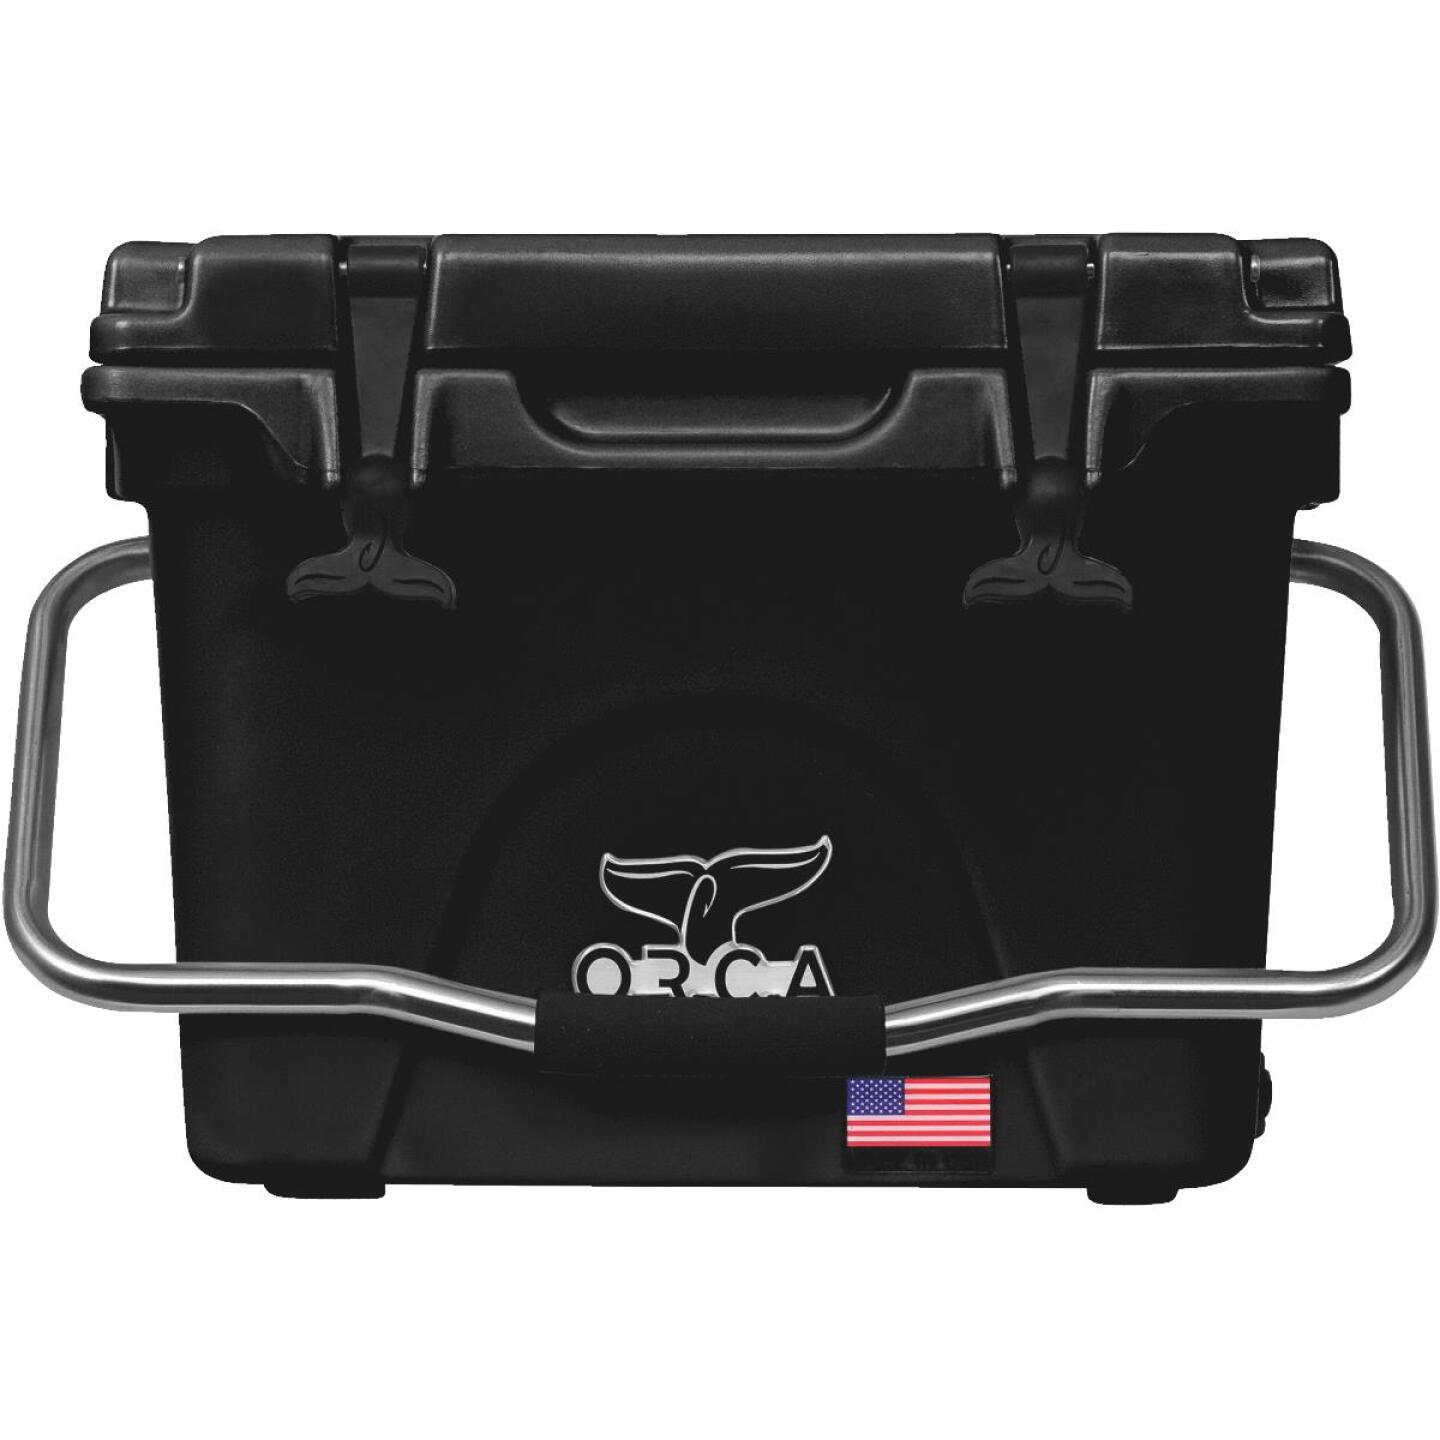 Orca 20 Qt. 18-Can Cooler, Black Image 1